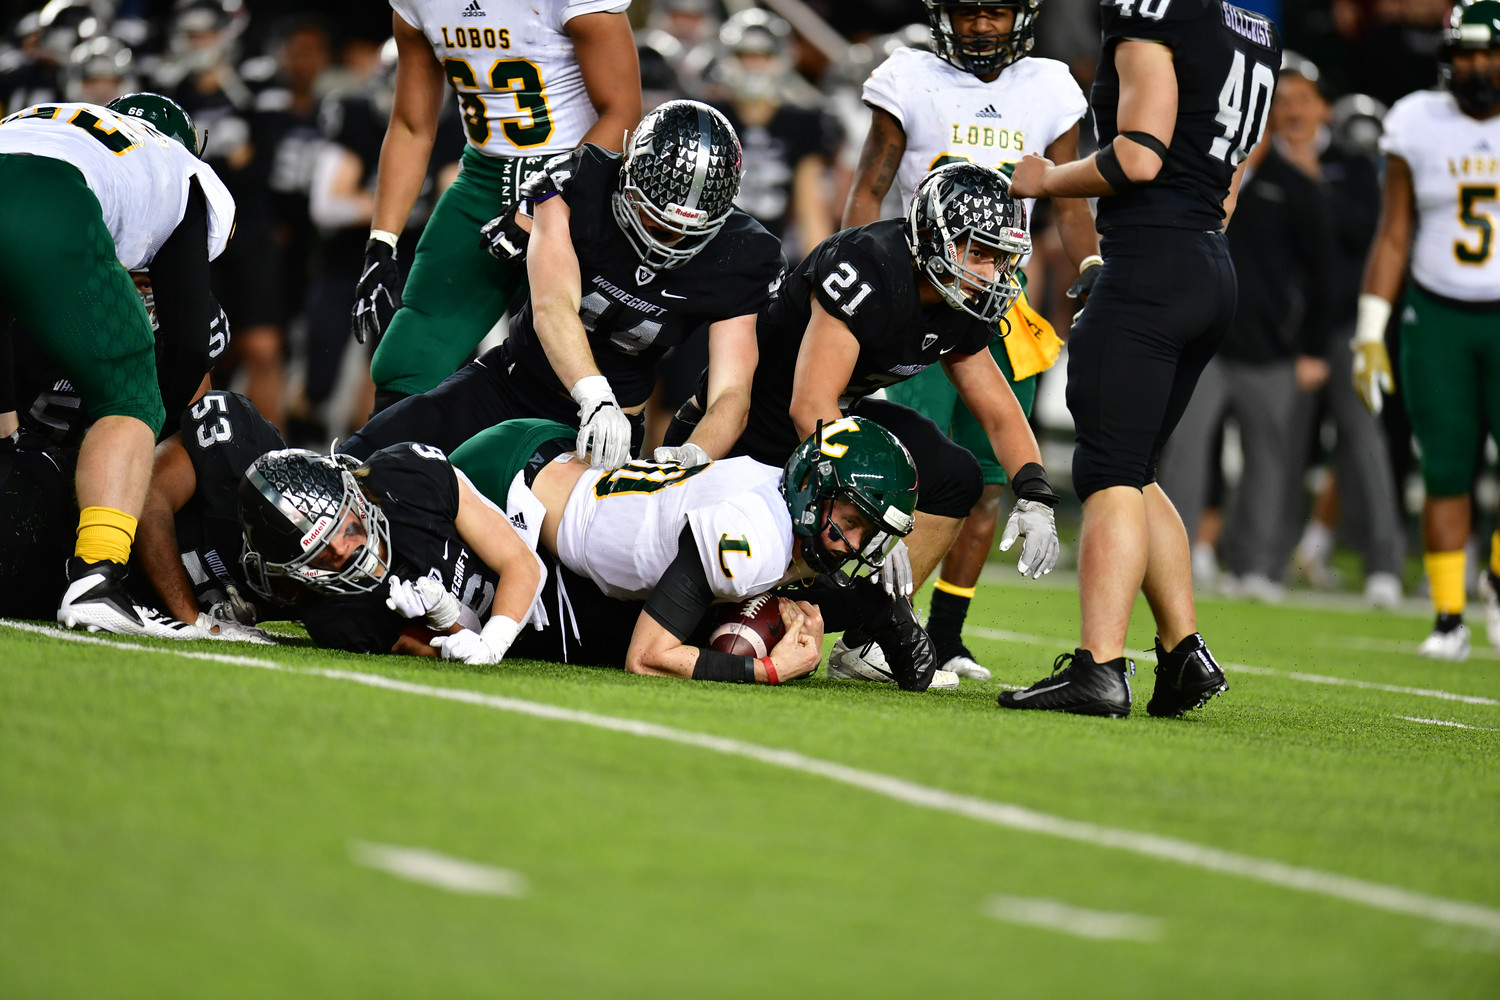 Trevor Harrison, left, Jax McCauley and Vandegrift fell to Longview 56-28 in the regional semifinals Saturday at McLane Stadium in Waco.